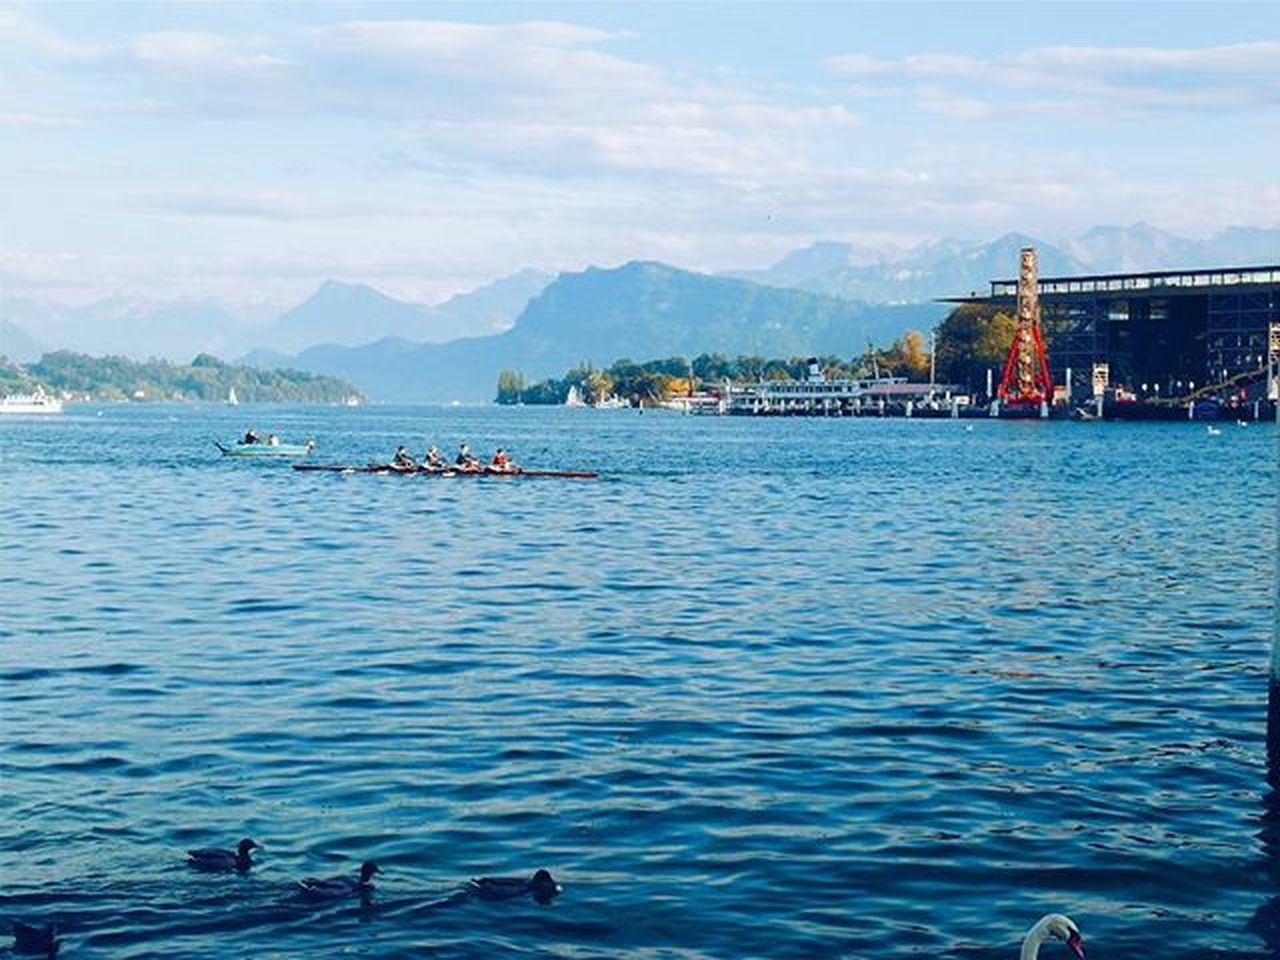 Beautiful day in Lucerne. LakeLucerne Lucerne Swiss Switzerland Europe Travel Adventure Wanderlust Exploreswitzerland Visitswitzerland Neverstopexploring  Explorer Traveller Traveltheworld Journey Ducks Lake Sky Travellover View Nature Discover  Blue Wave Blue Sky